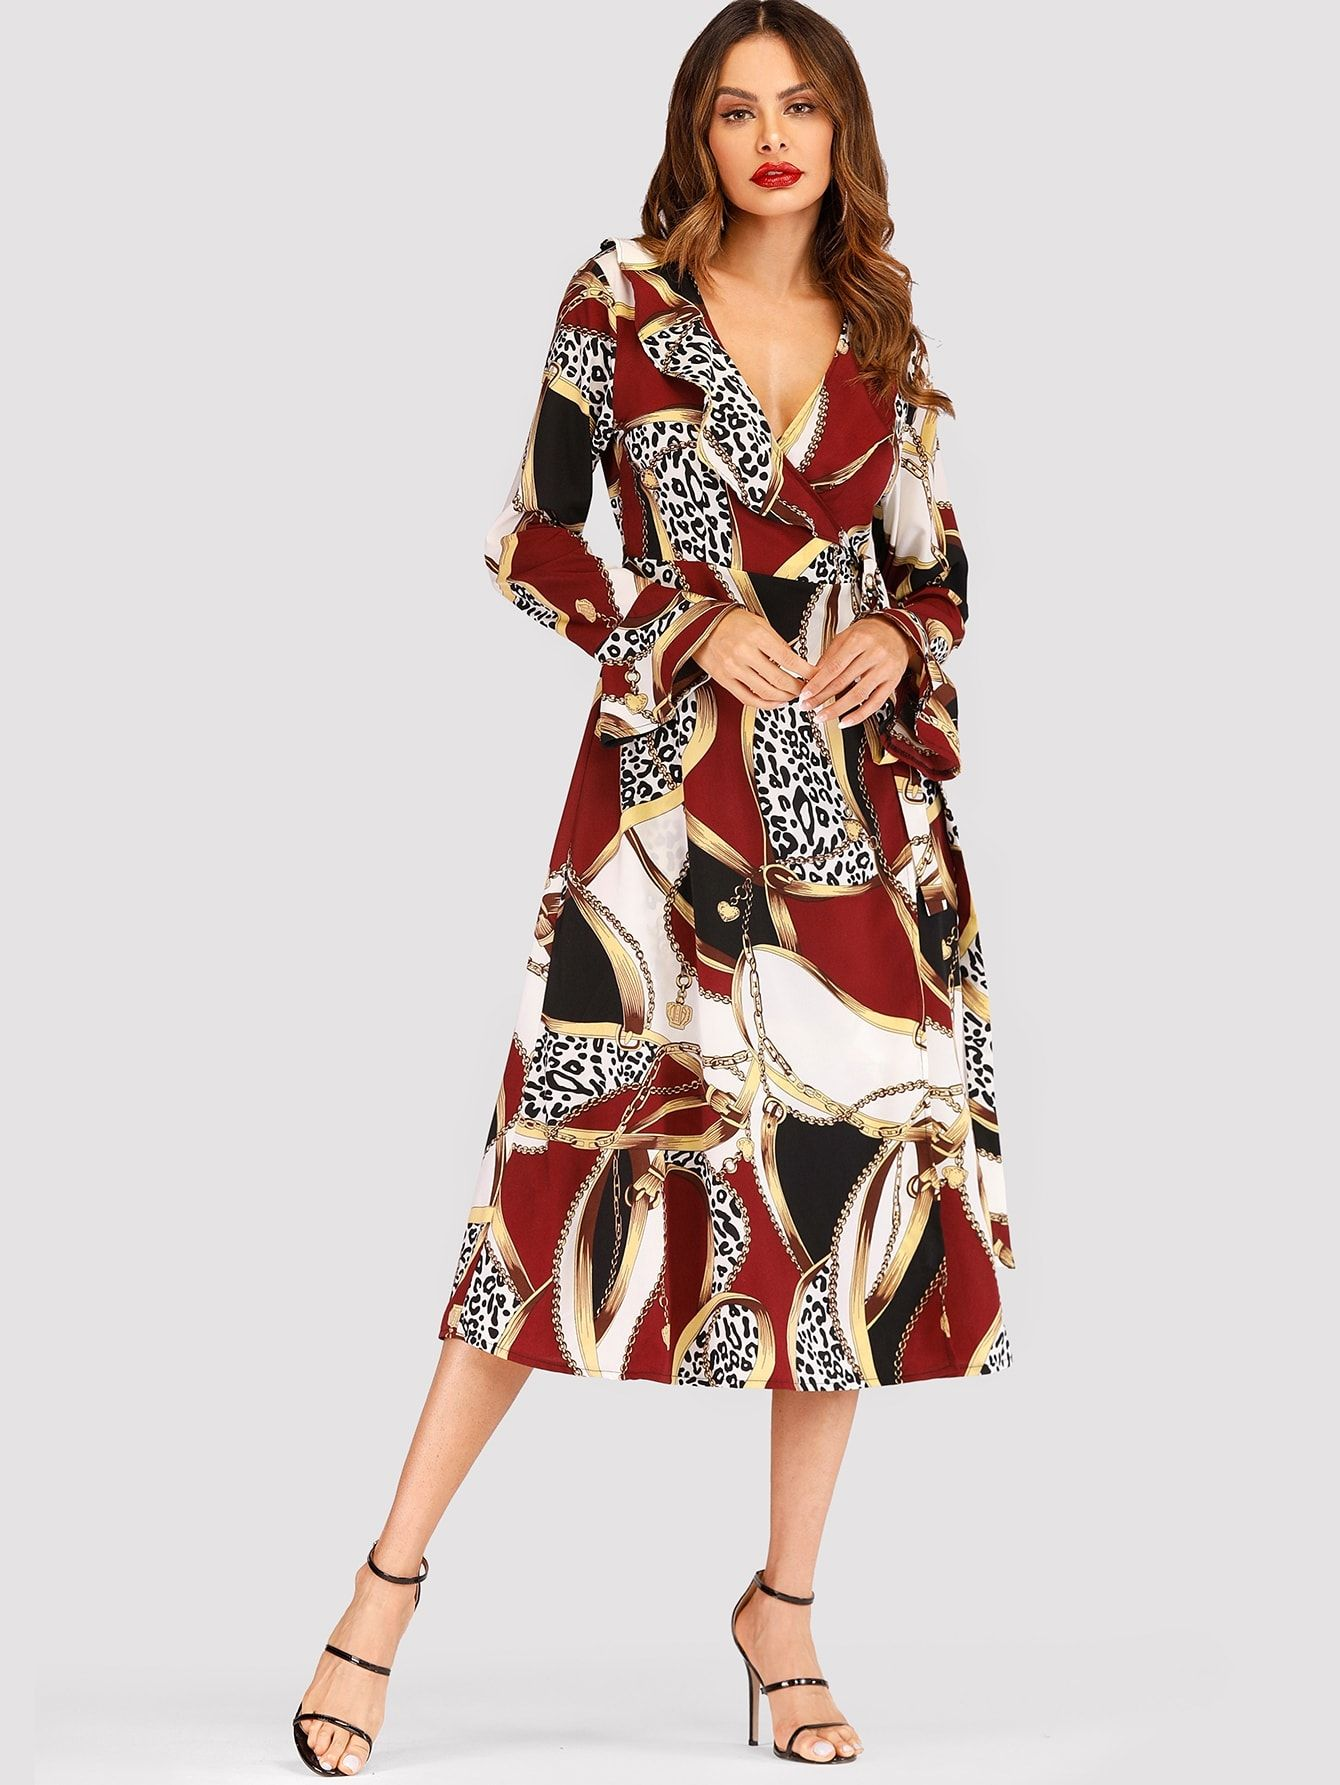 c350886d728 ... Ruffle and Knot Leopard Fit and Flare Trapeze V Neck Long Sleeve Flounce  Sleeve High Waist Multicolor Long Length Scarf Print Ruffle Wrap Self Tie  Dress